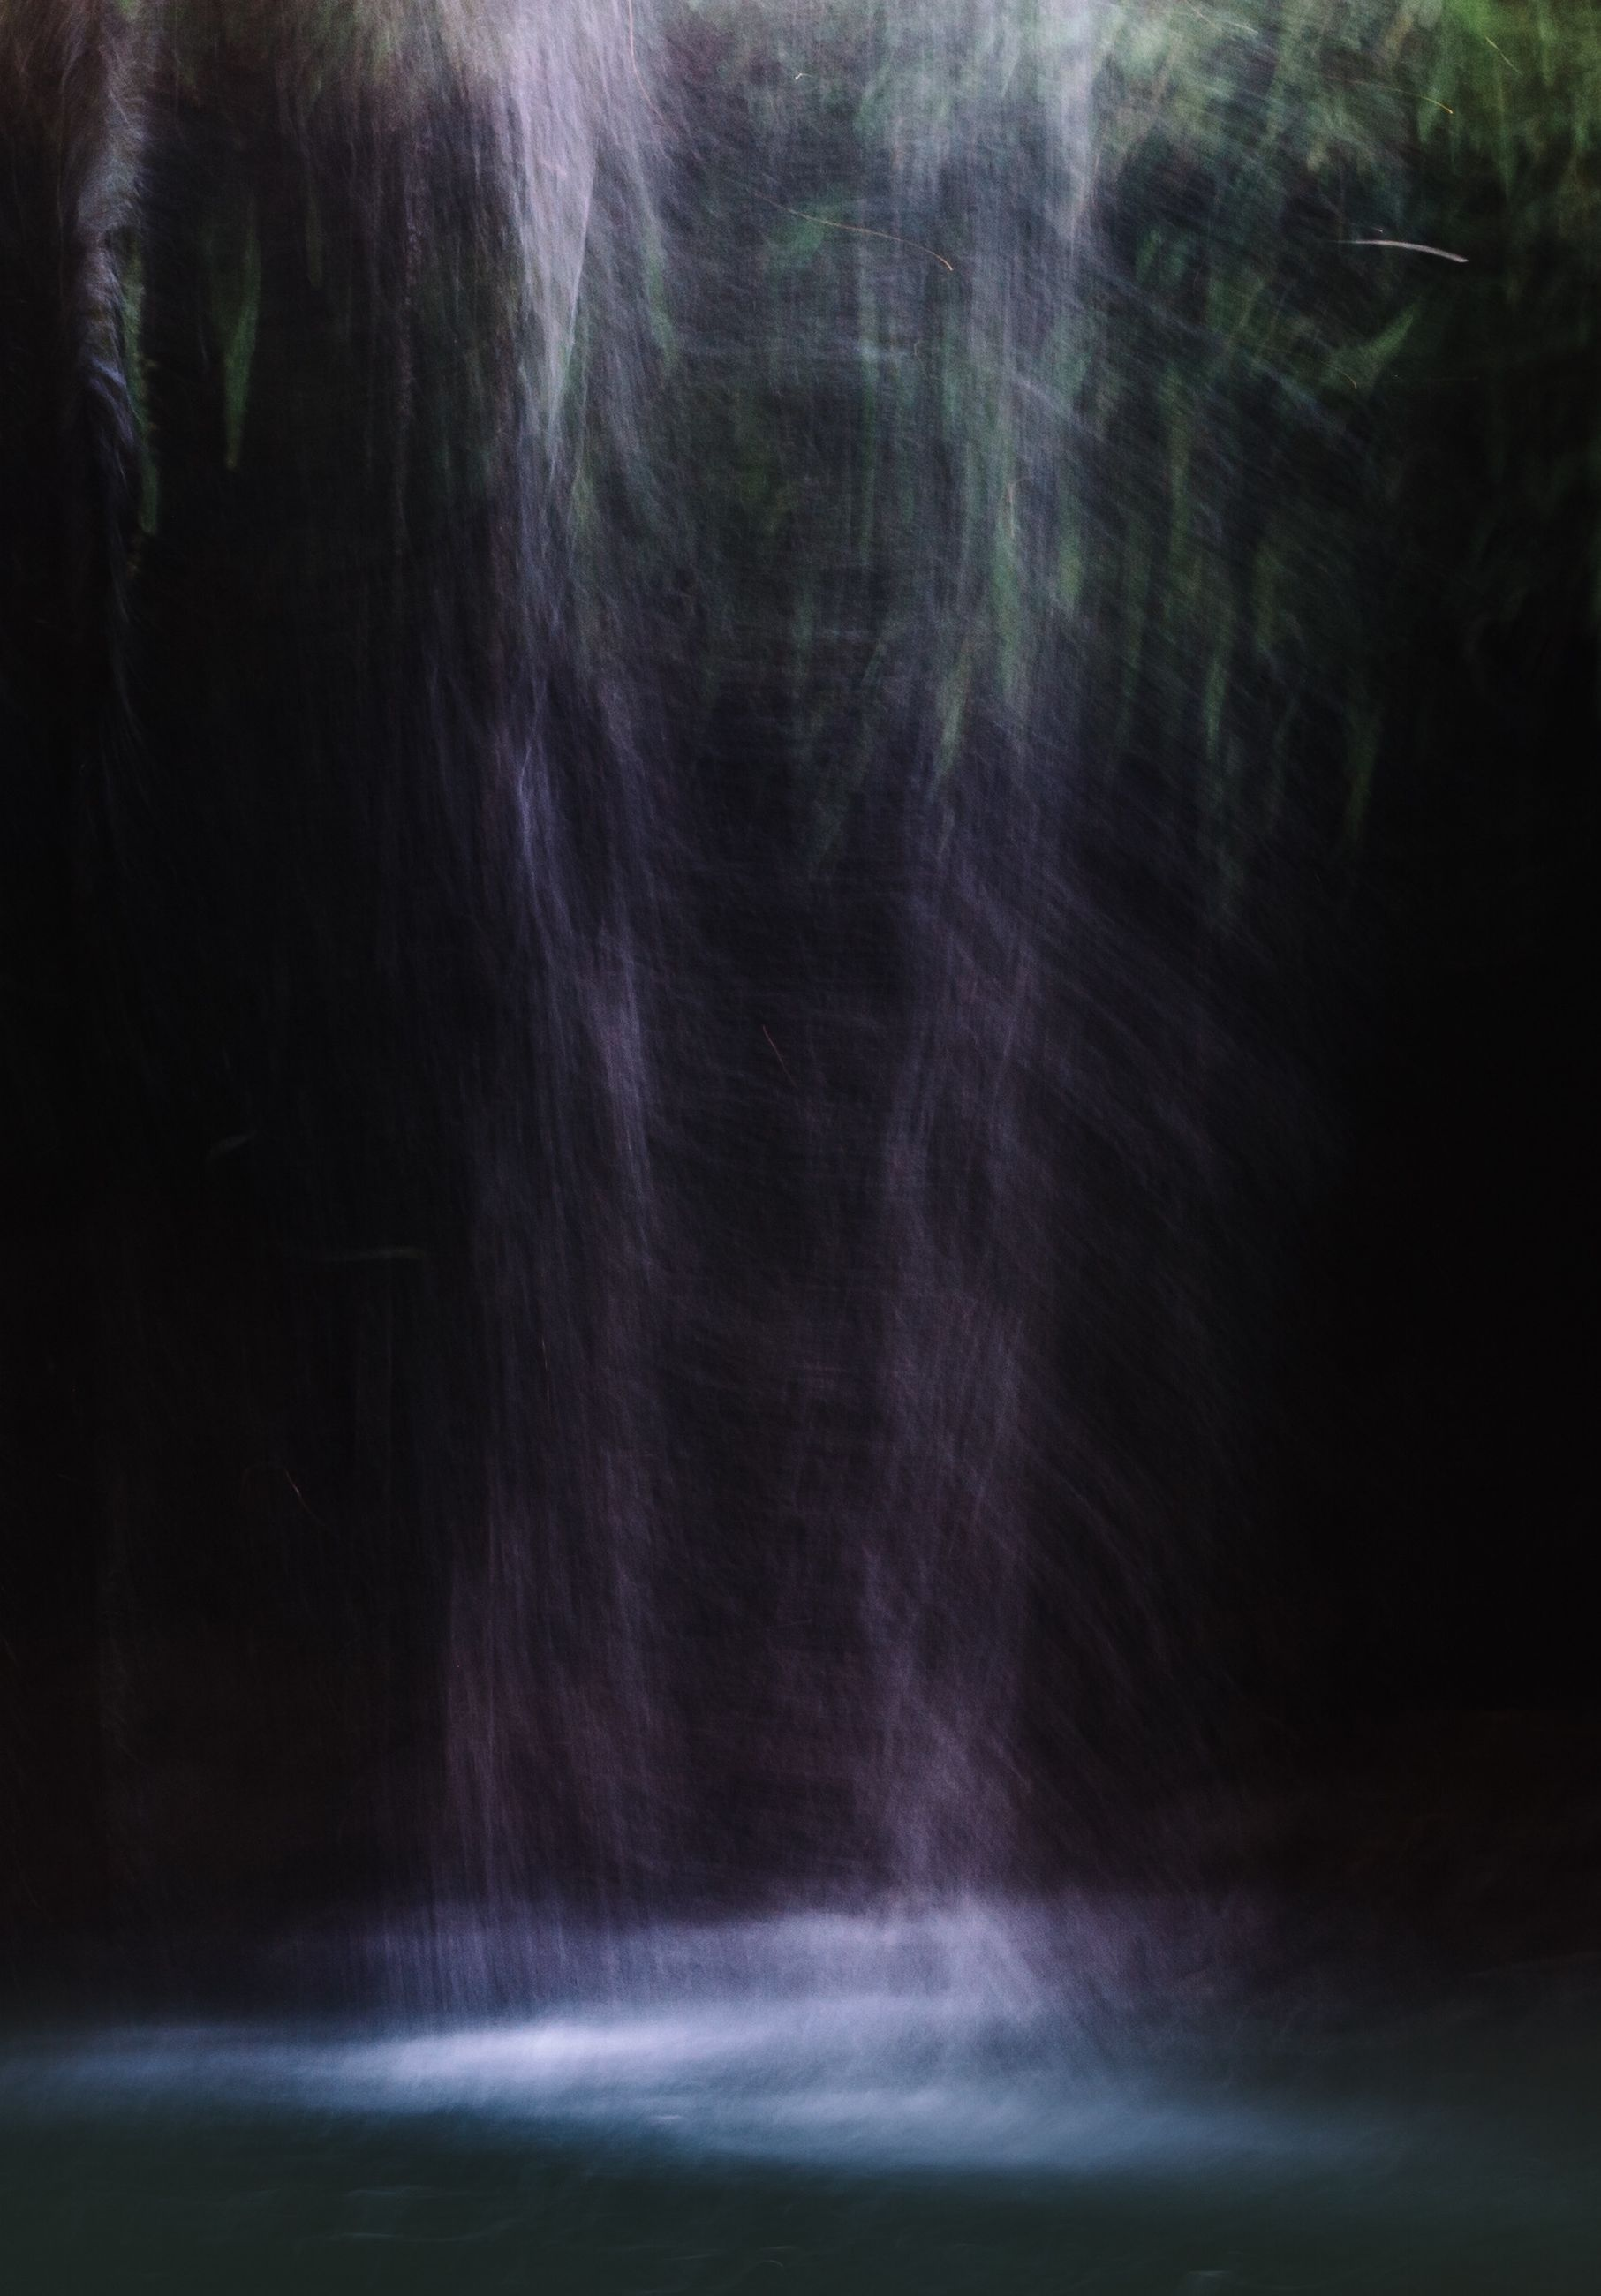 long exposure, motion, blurred motion, tree, beauty in nature, nature, waterfall, scenics, forest, night, power in nature, tranquility, no people, outdoors, speed, tranquil scene, idyllic, low angle view, flowing, flowing water